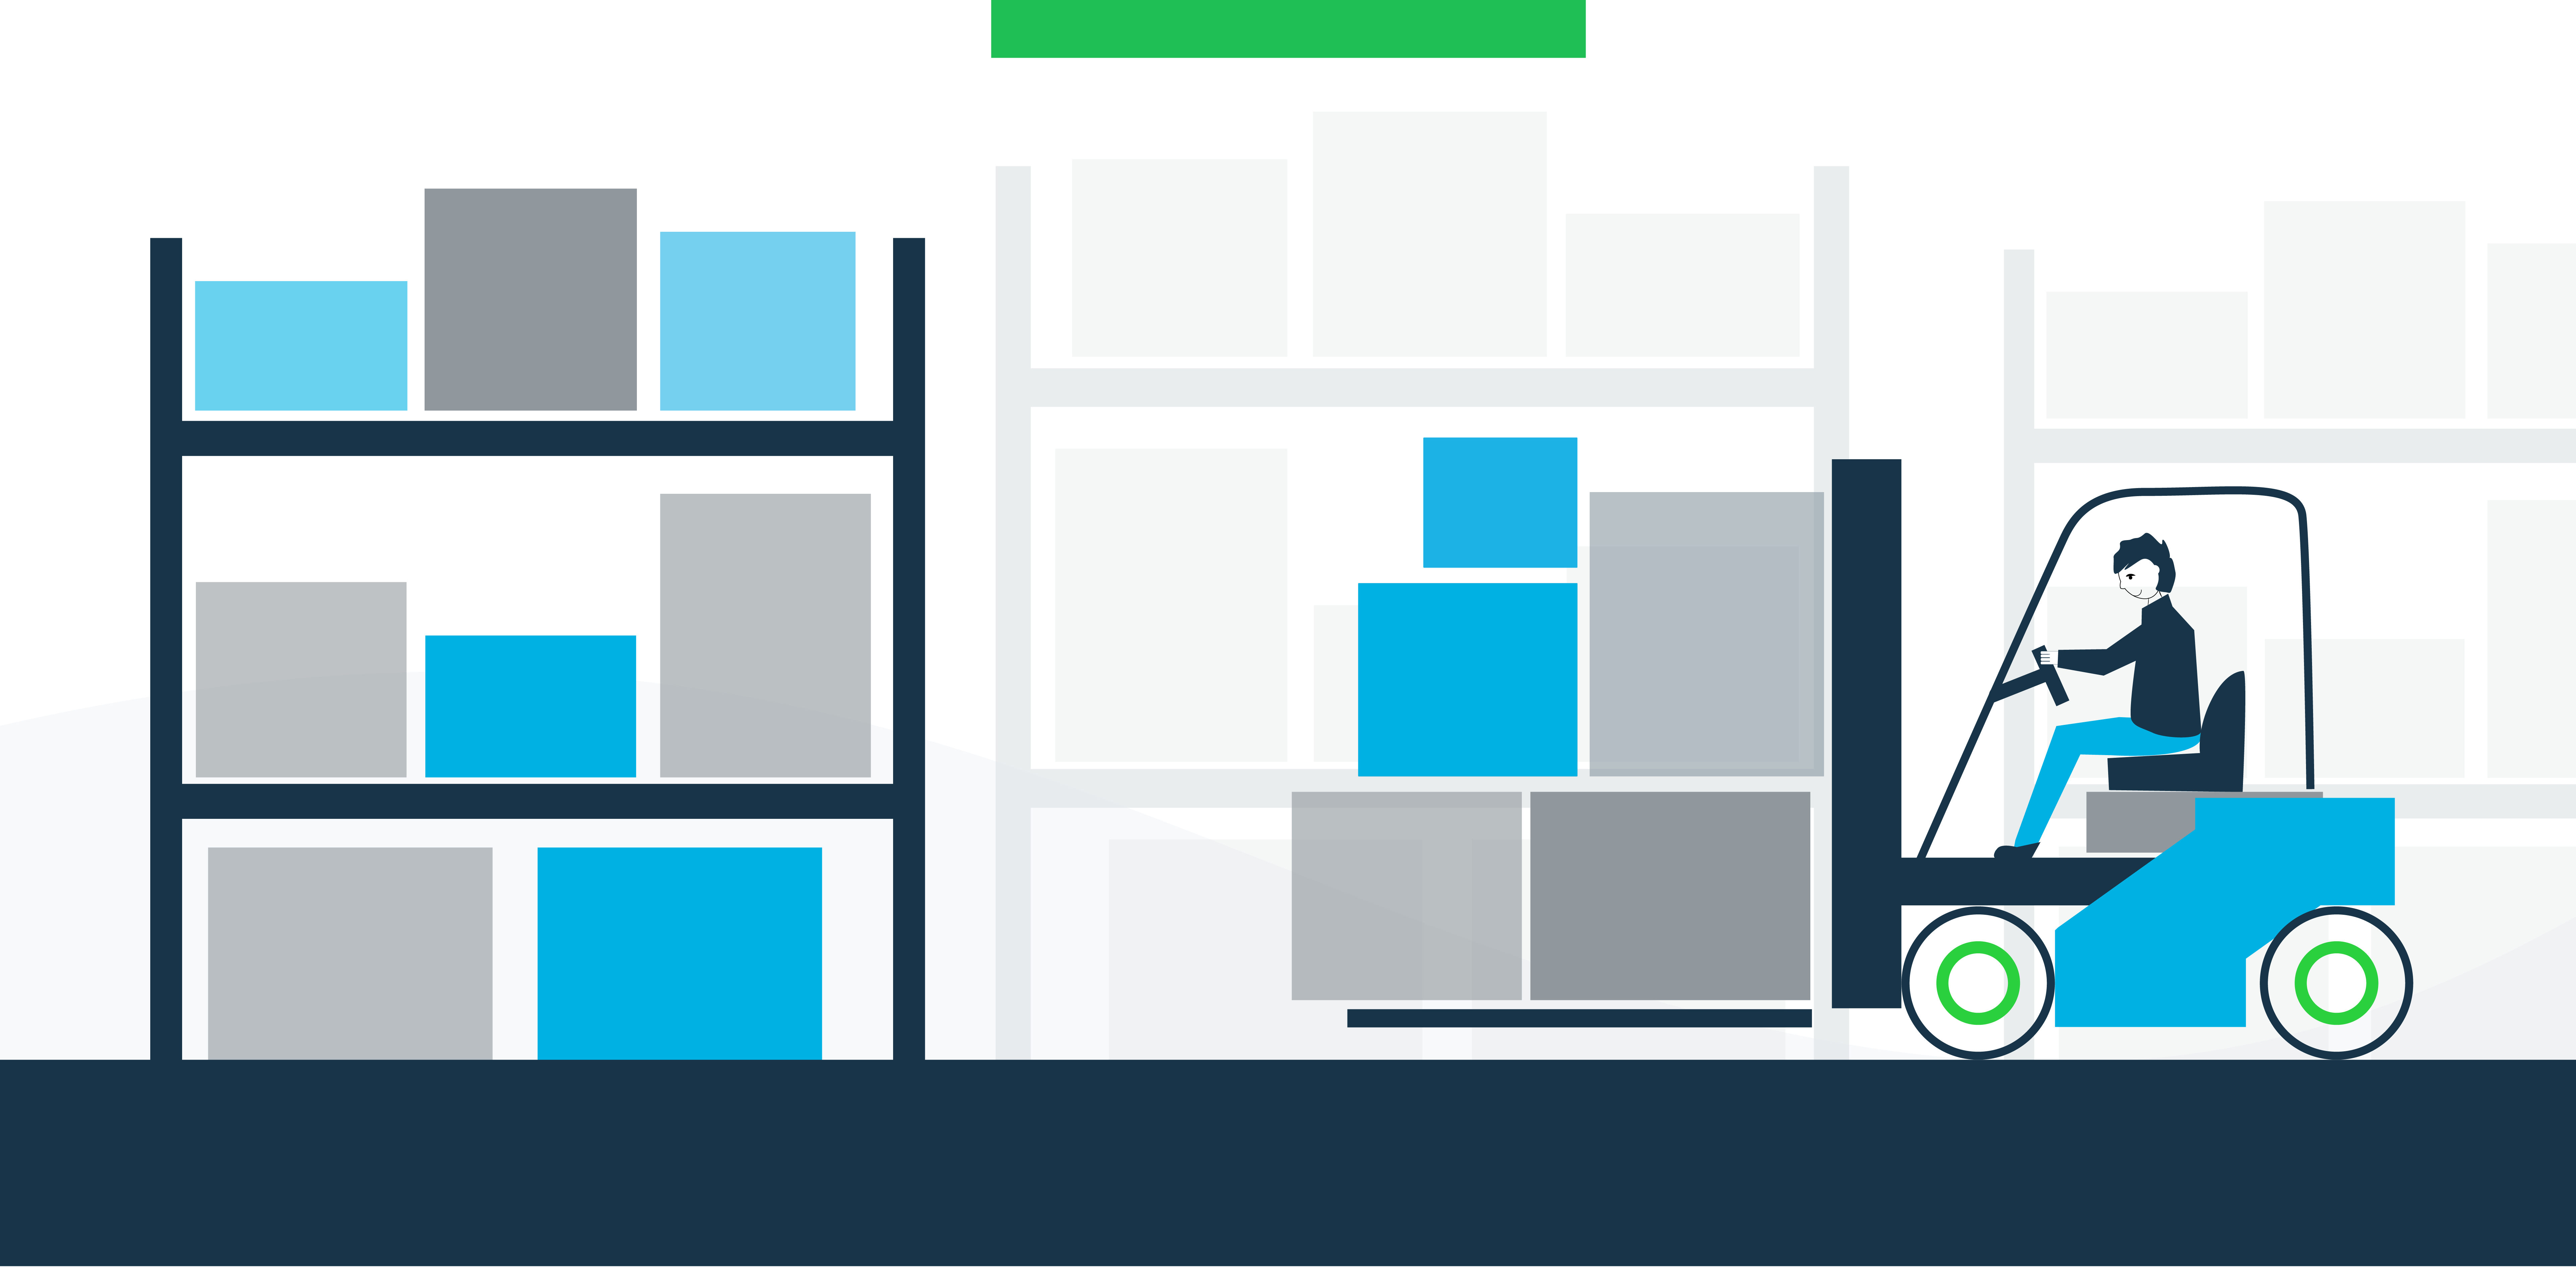 Illustration of person on forklift in a warehouse moving packages